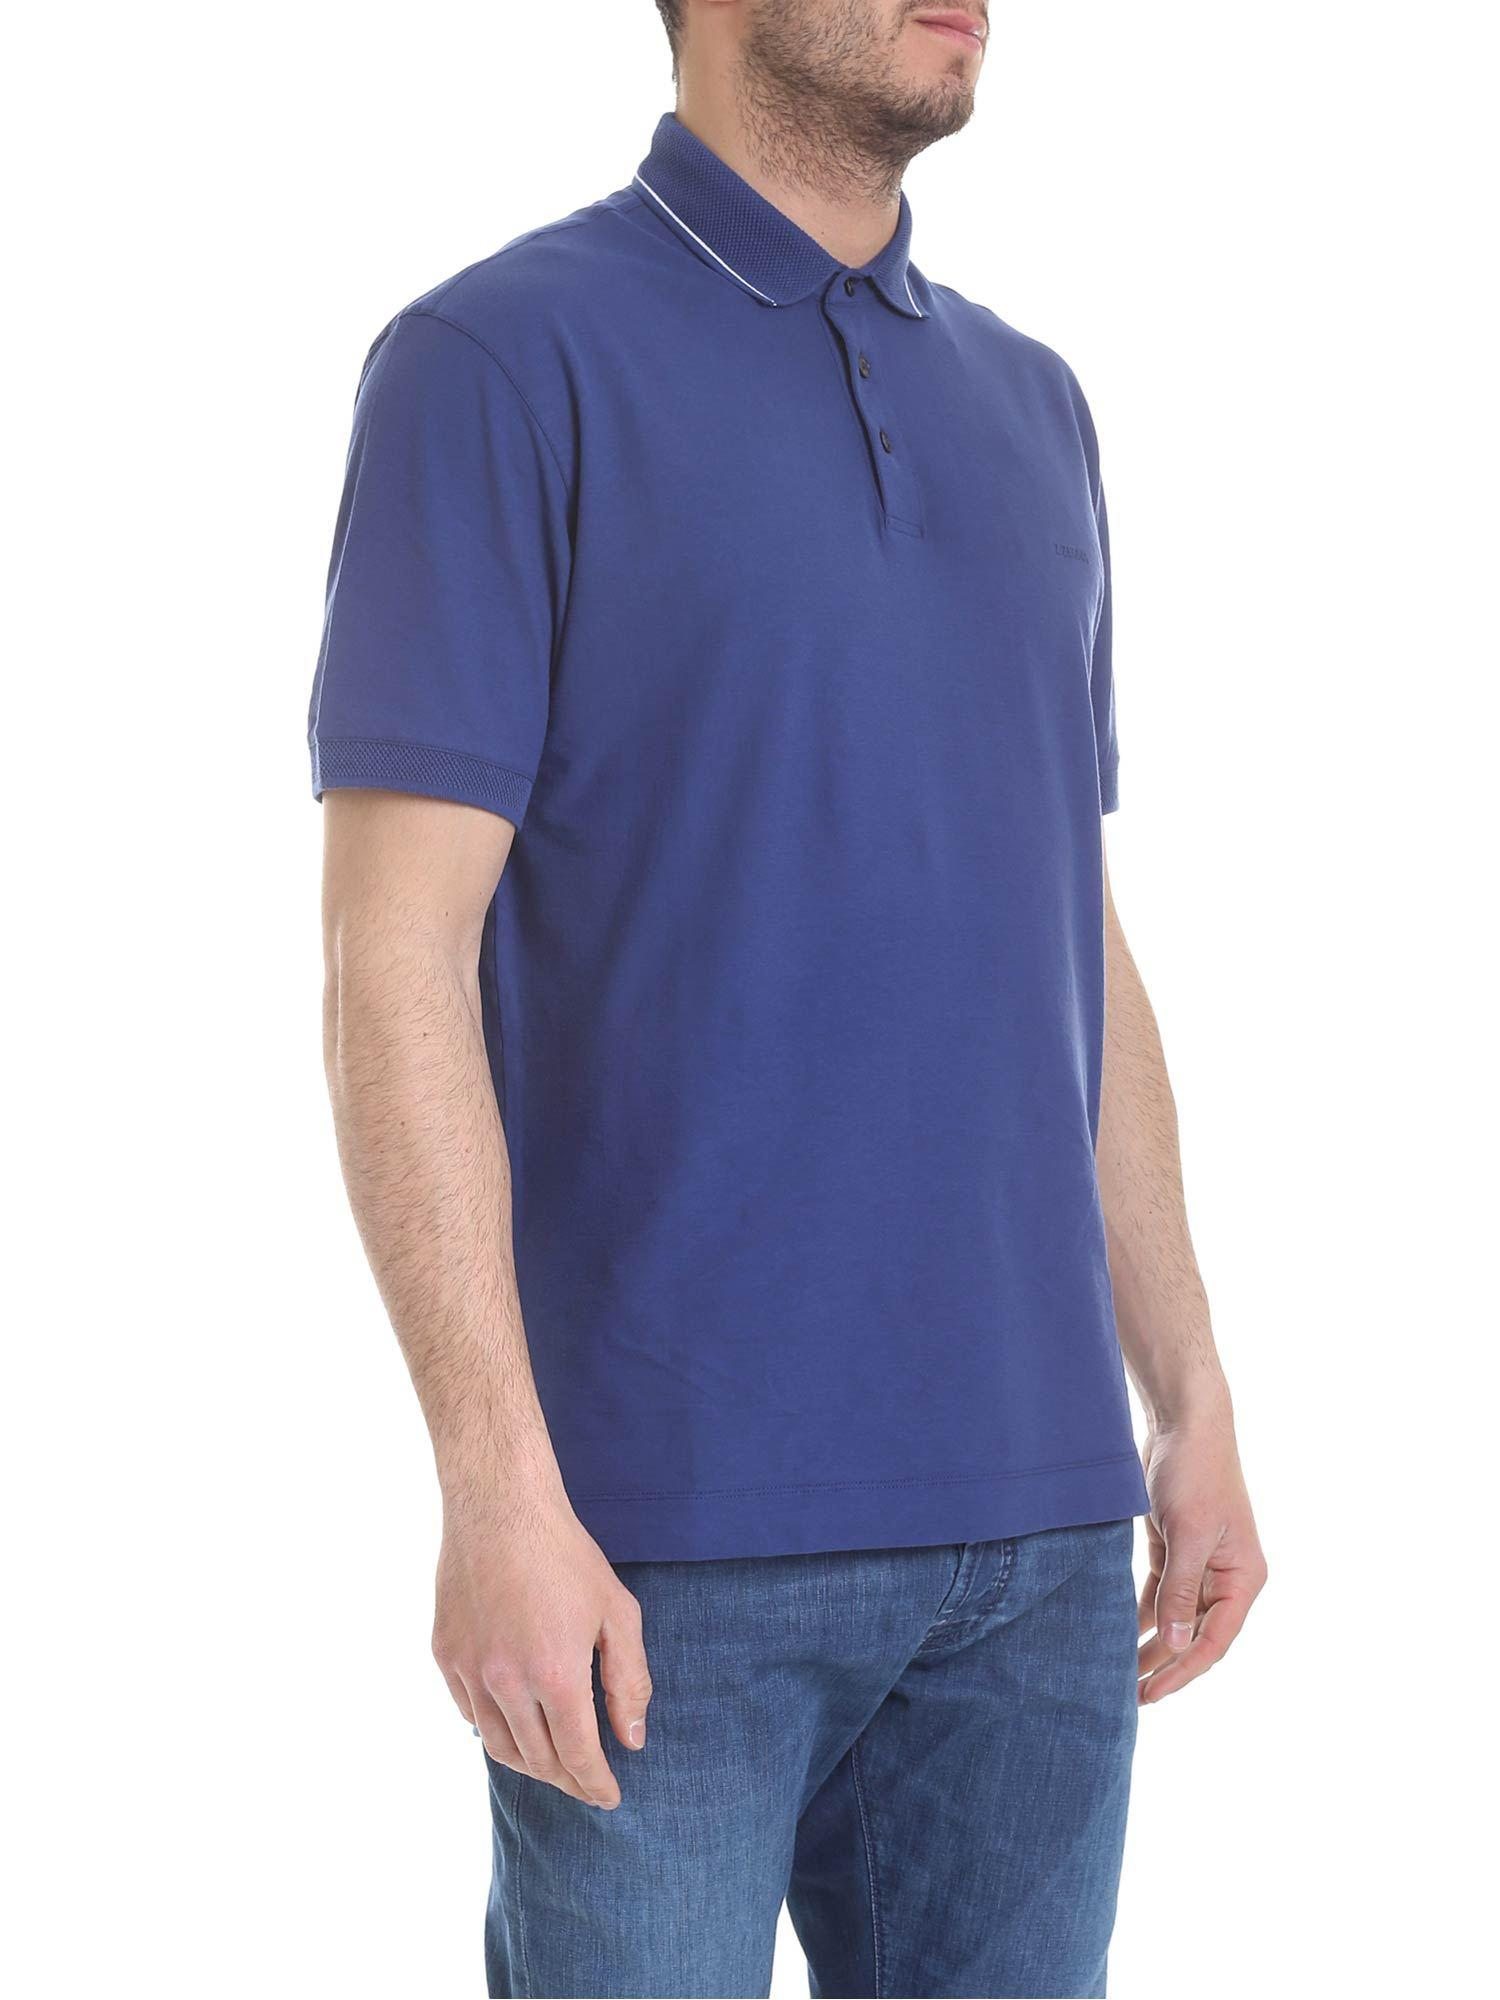 d4d4e8bc9 Lyst - Z Zegna Blue Polo Shirt With White Stripes in Blue for Men